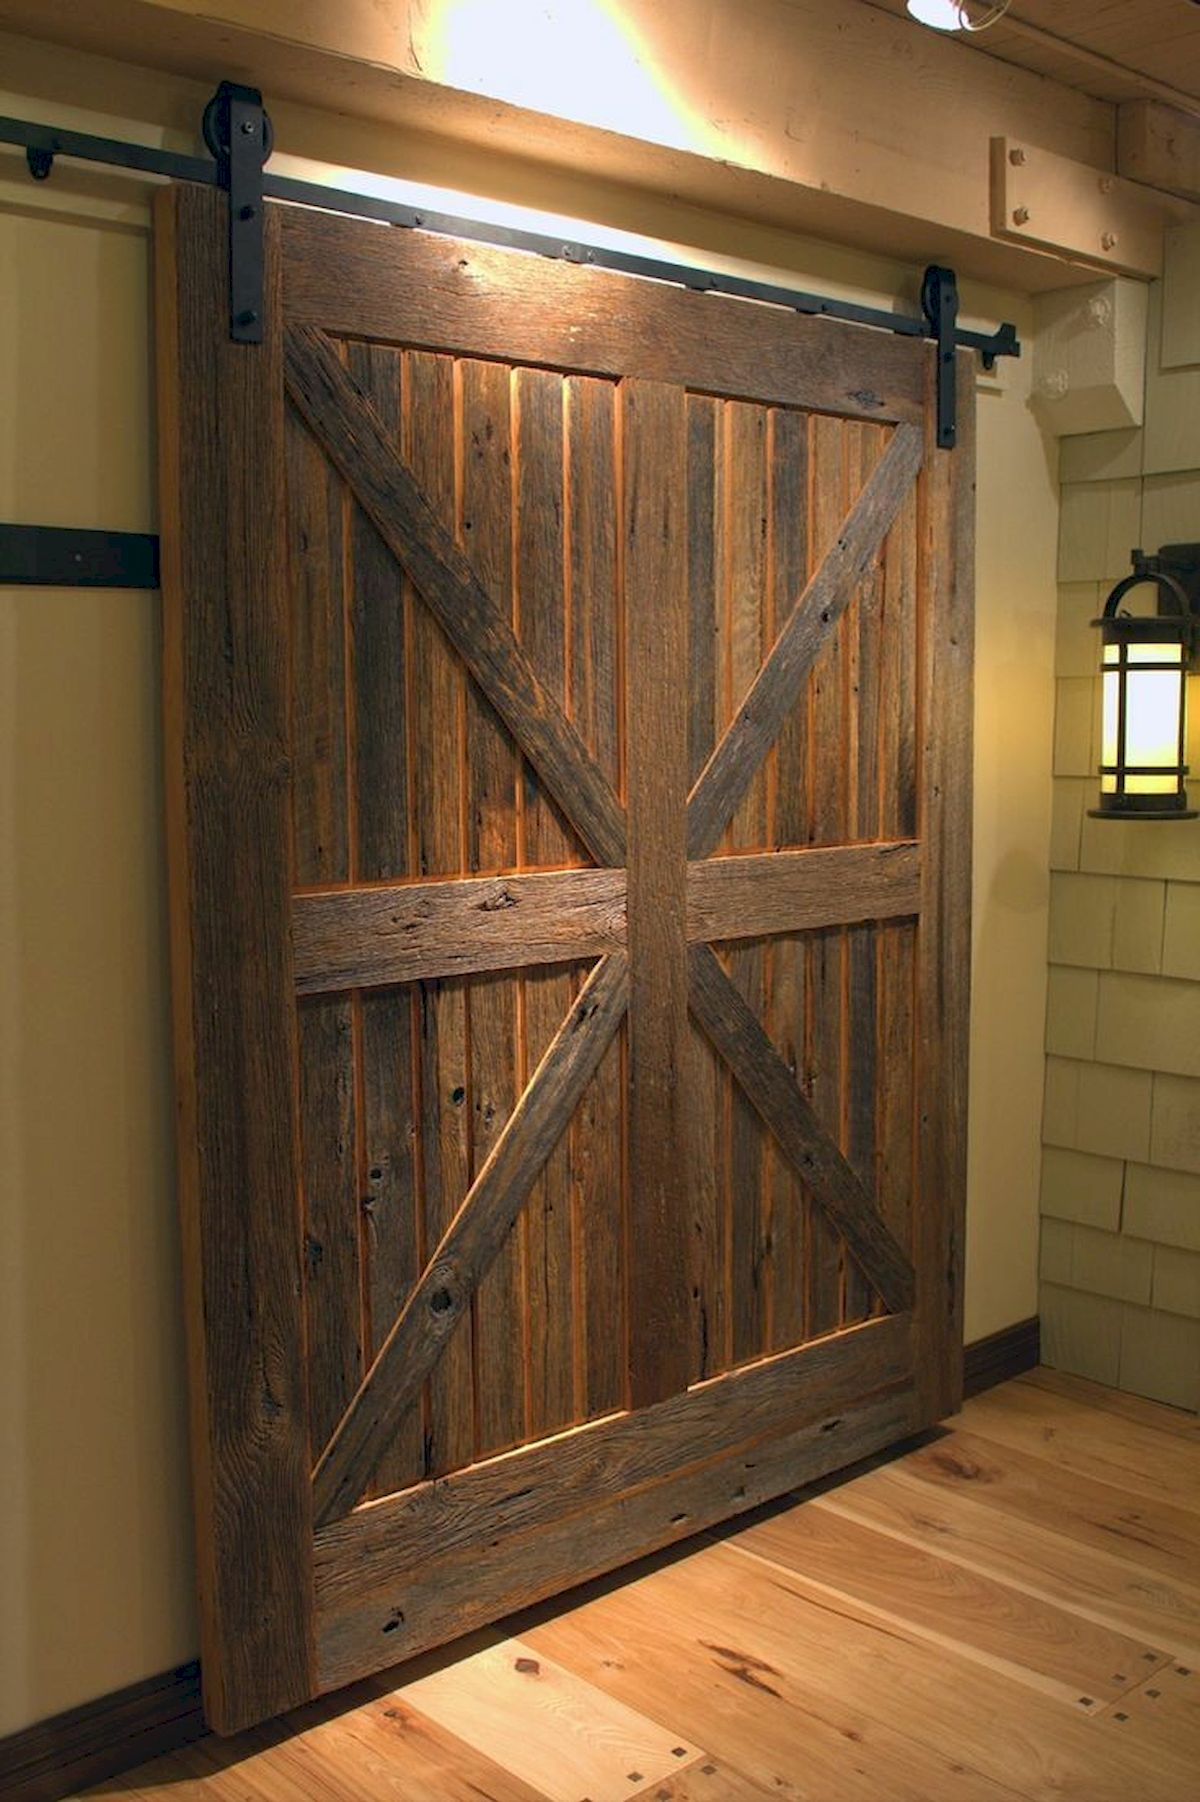 70 Rustic Home Decor Ideas for Doors and Windows (33)